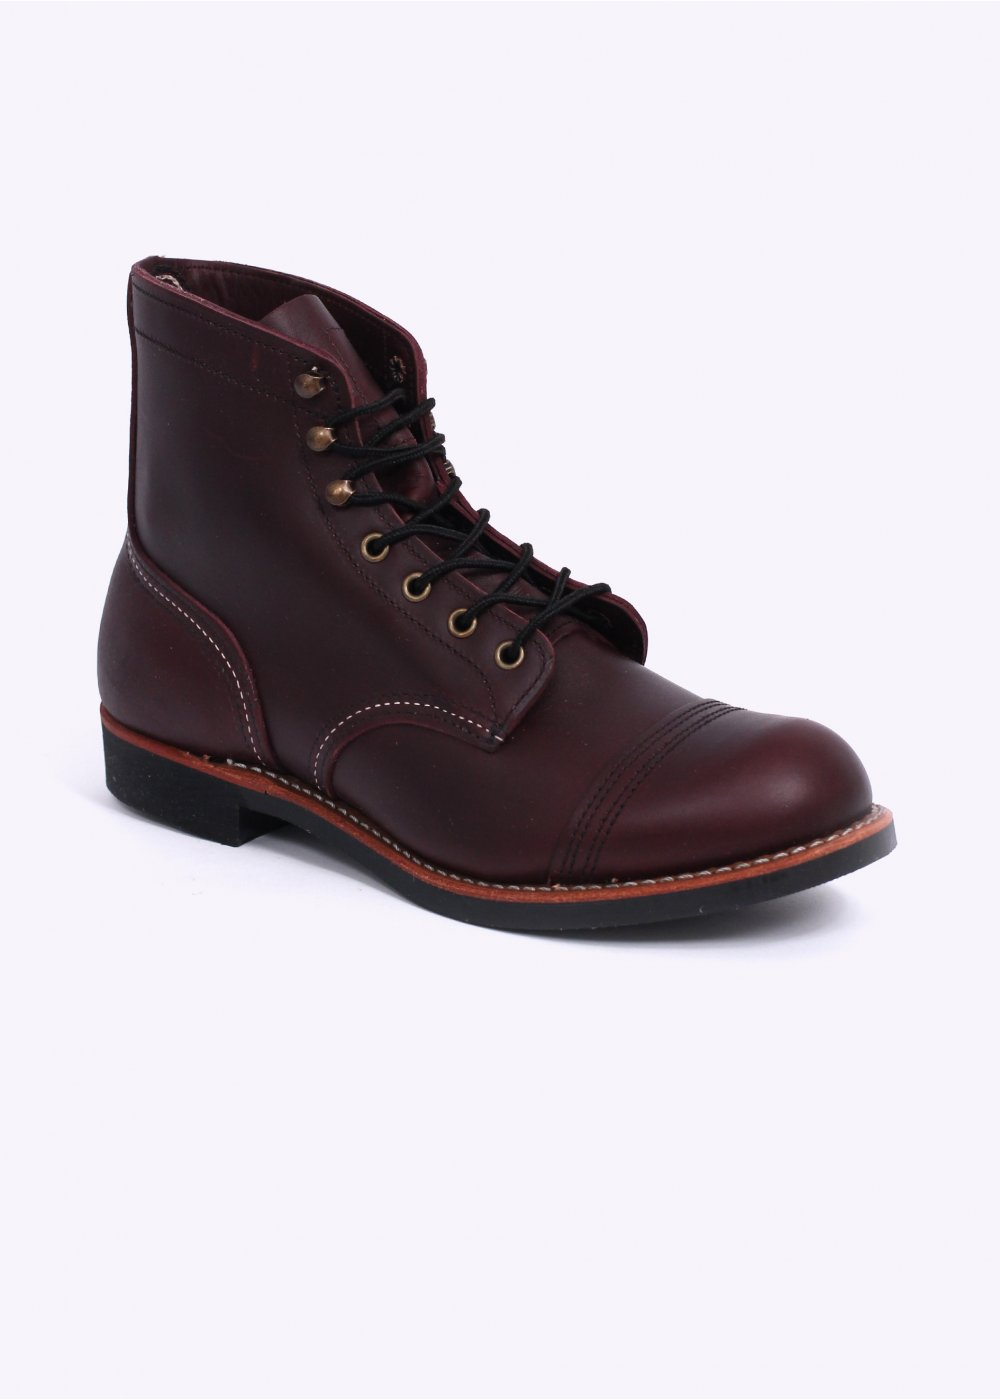 New Established In 1905 In Red Wing, Minn, The Red Wing Shoe Company Specializes In Shoes For Those Working In Areas Such As  Including Mens And Womens Styles, Work Footwear, Casual Footwear And Outdoor Footwear&quot Visit The New